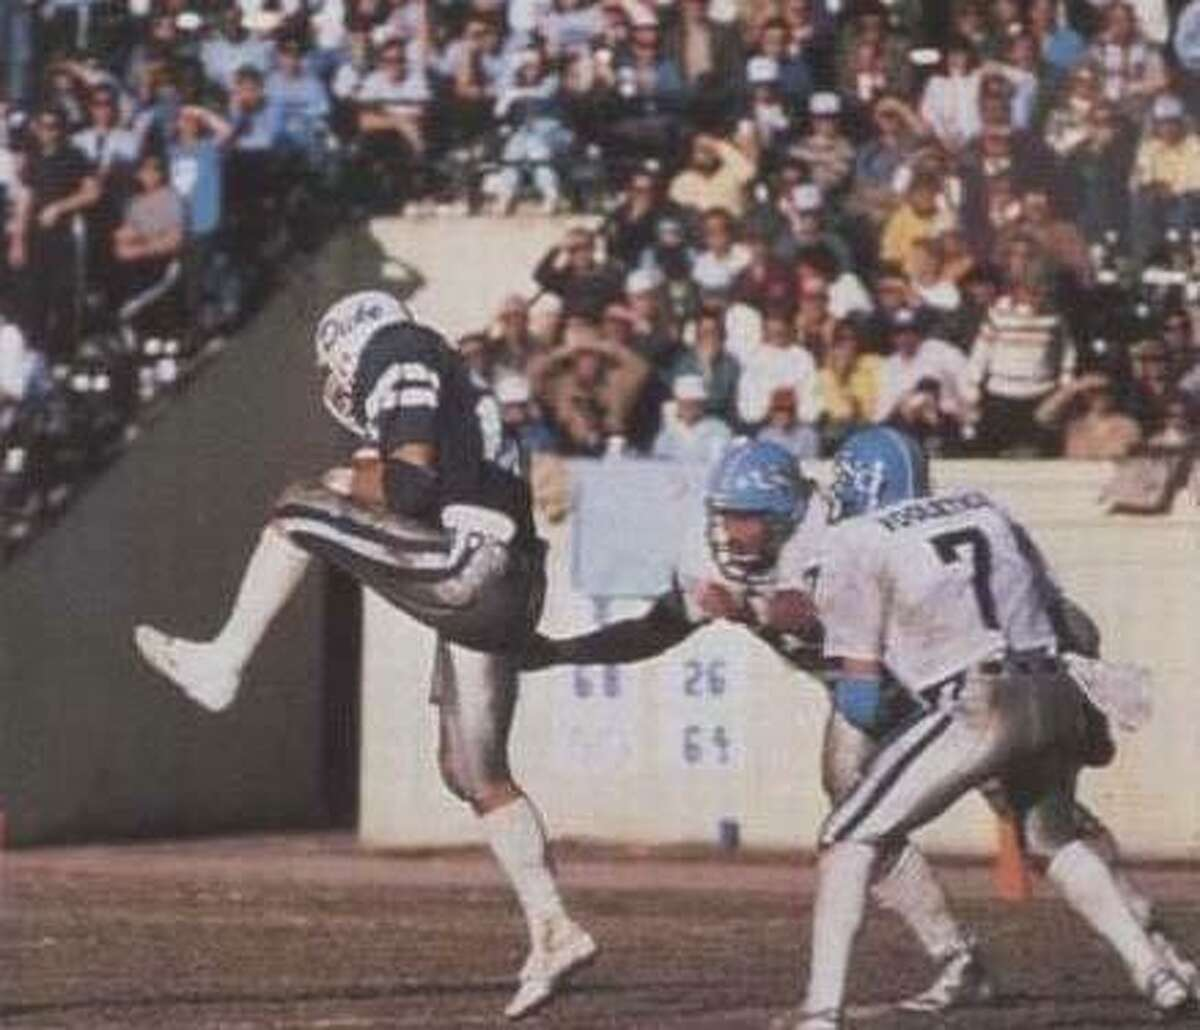 New Canaan wide receiver coach Jason Cooper died unexpectedly on Saturday, July 7, 2018 at age 52. A former standout at New Canaan, Cooper played at Duke before a brief NFL career. Cooper is shown here catching a pass while at Duke.